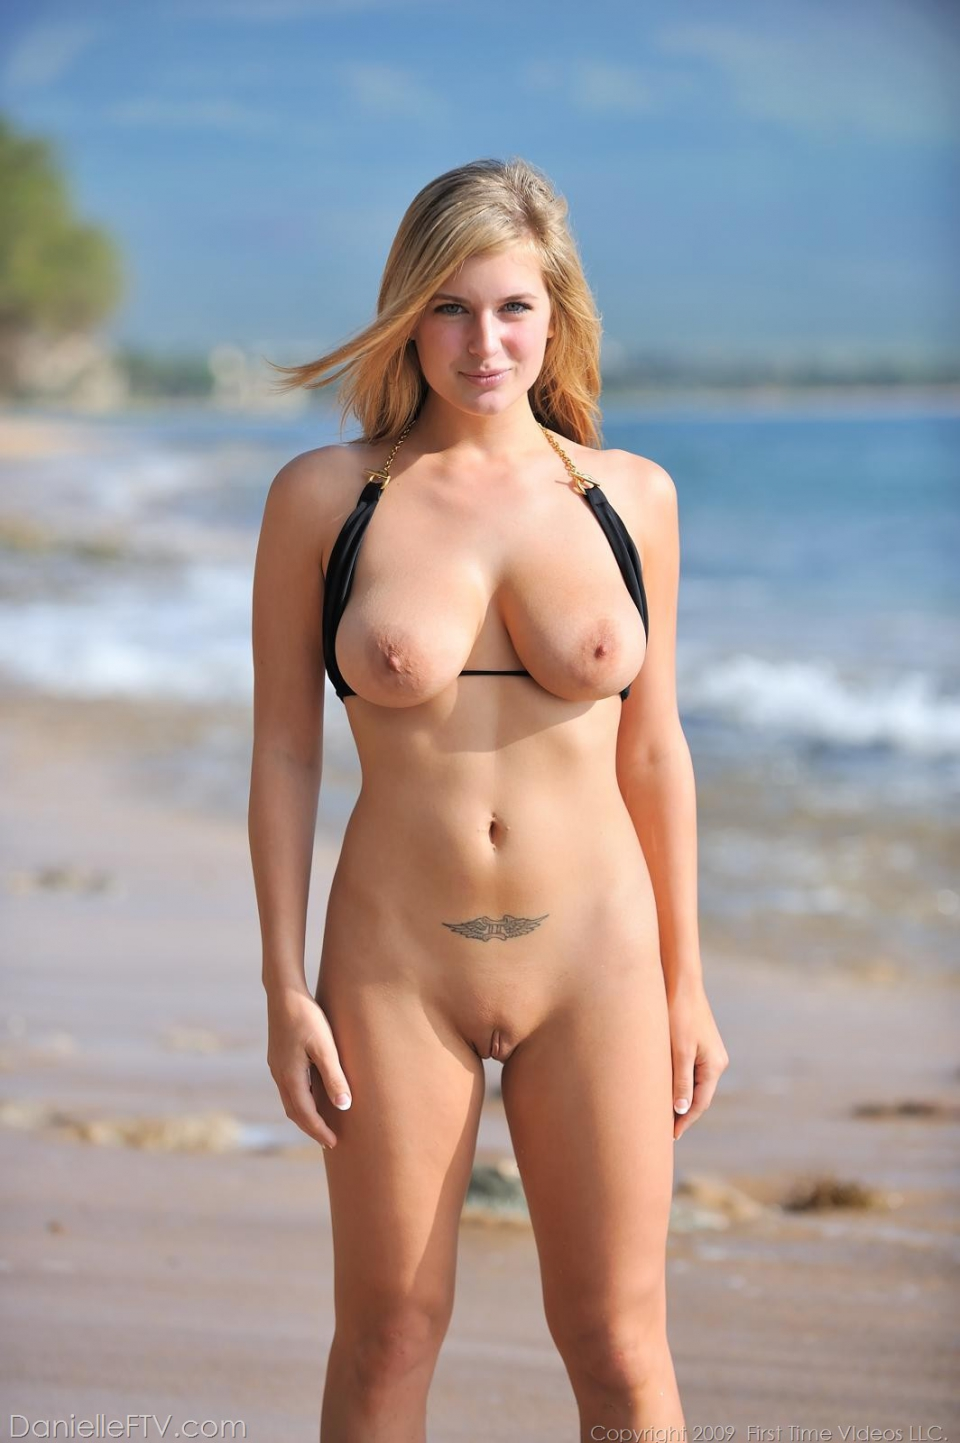 ftv beach sex images